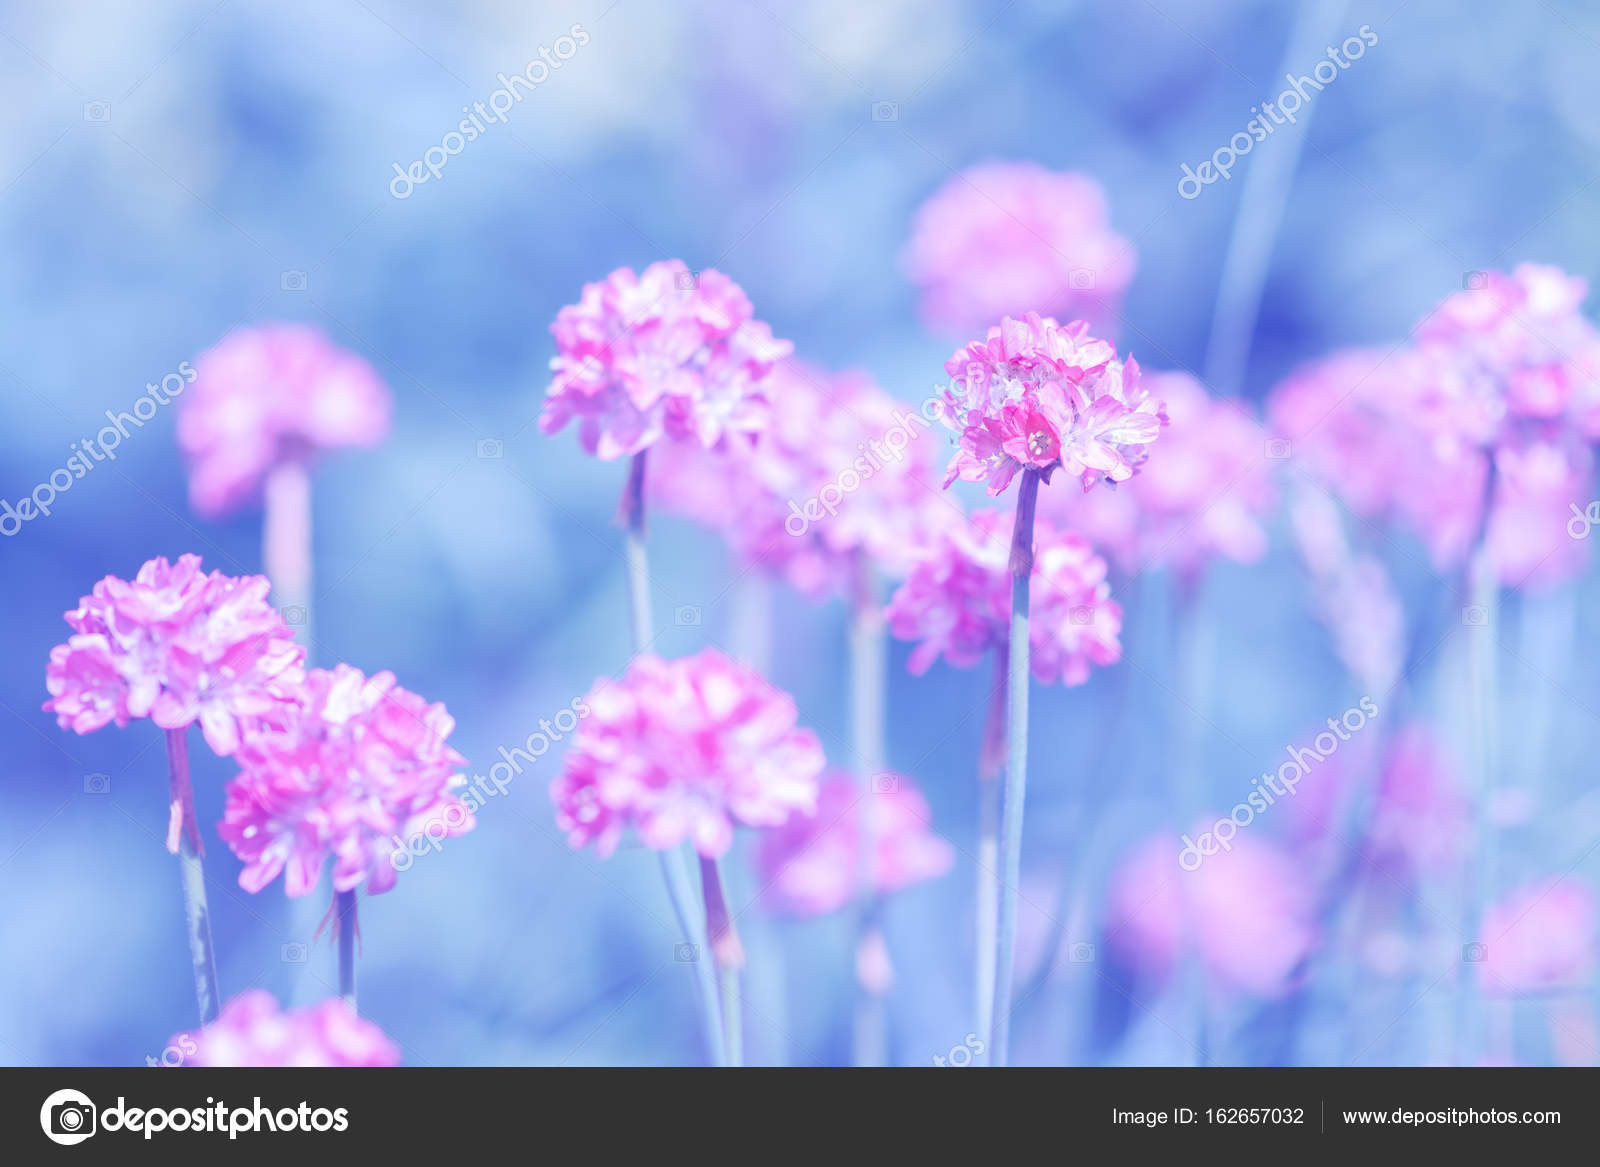 Small Pink Round Flowers On A Blue Background Artistic Image With